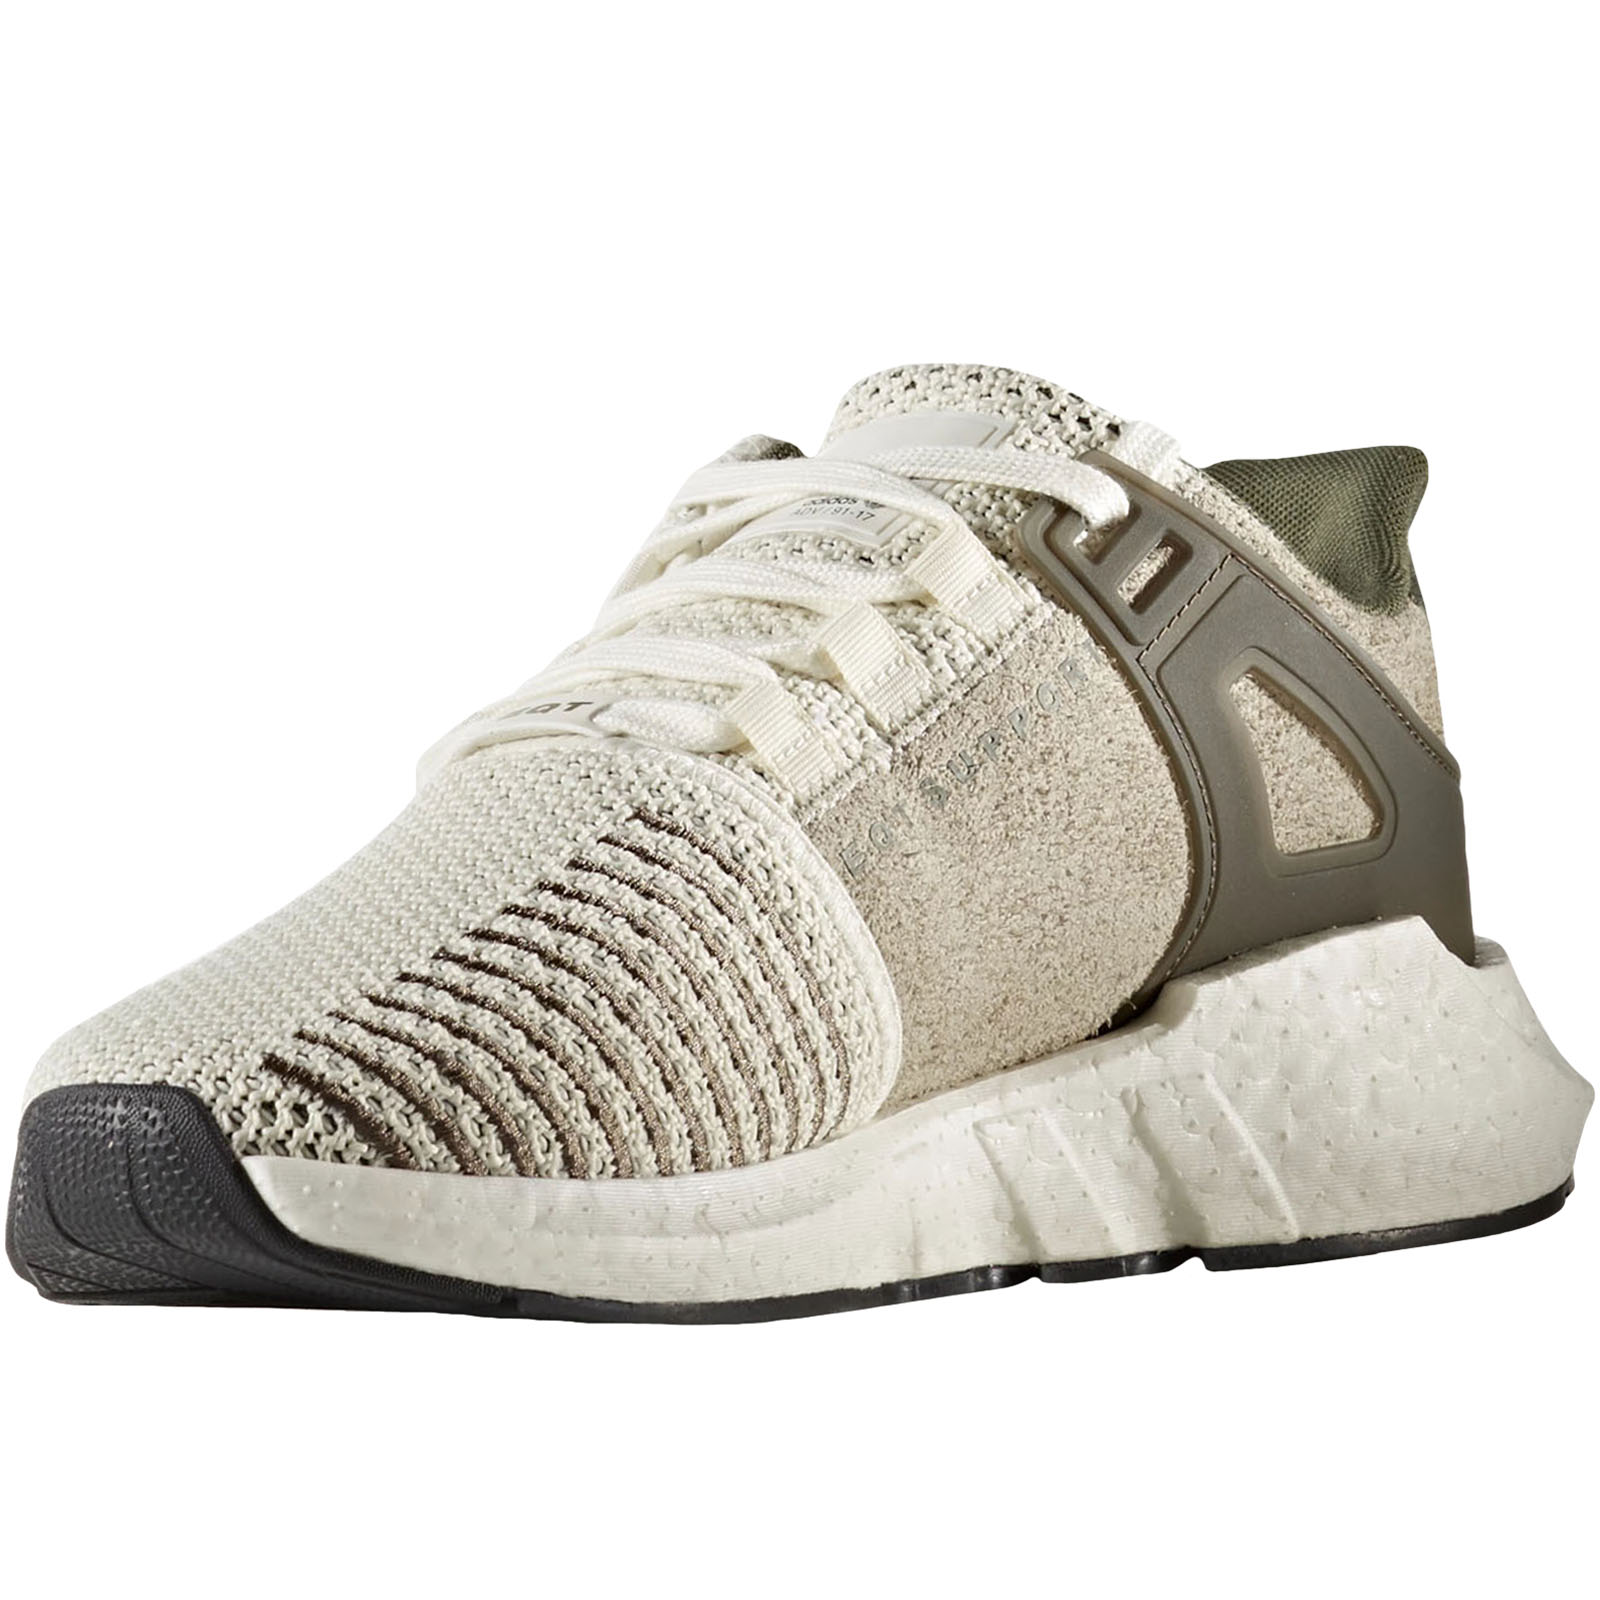 new product 6a7c5 ae285 adidas Originals EQT Support 93/17 Boost off White Bz9510 Size 10